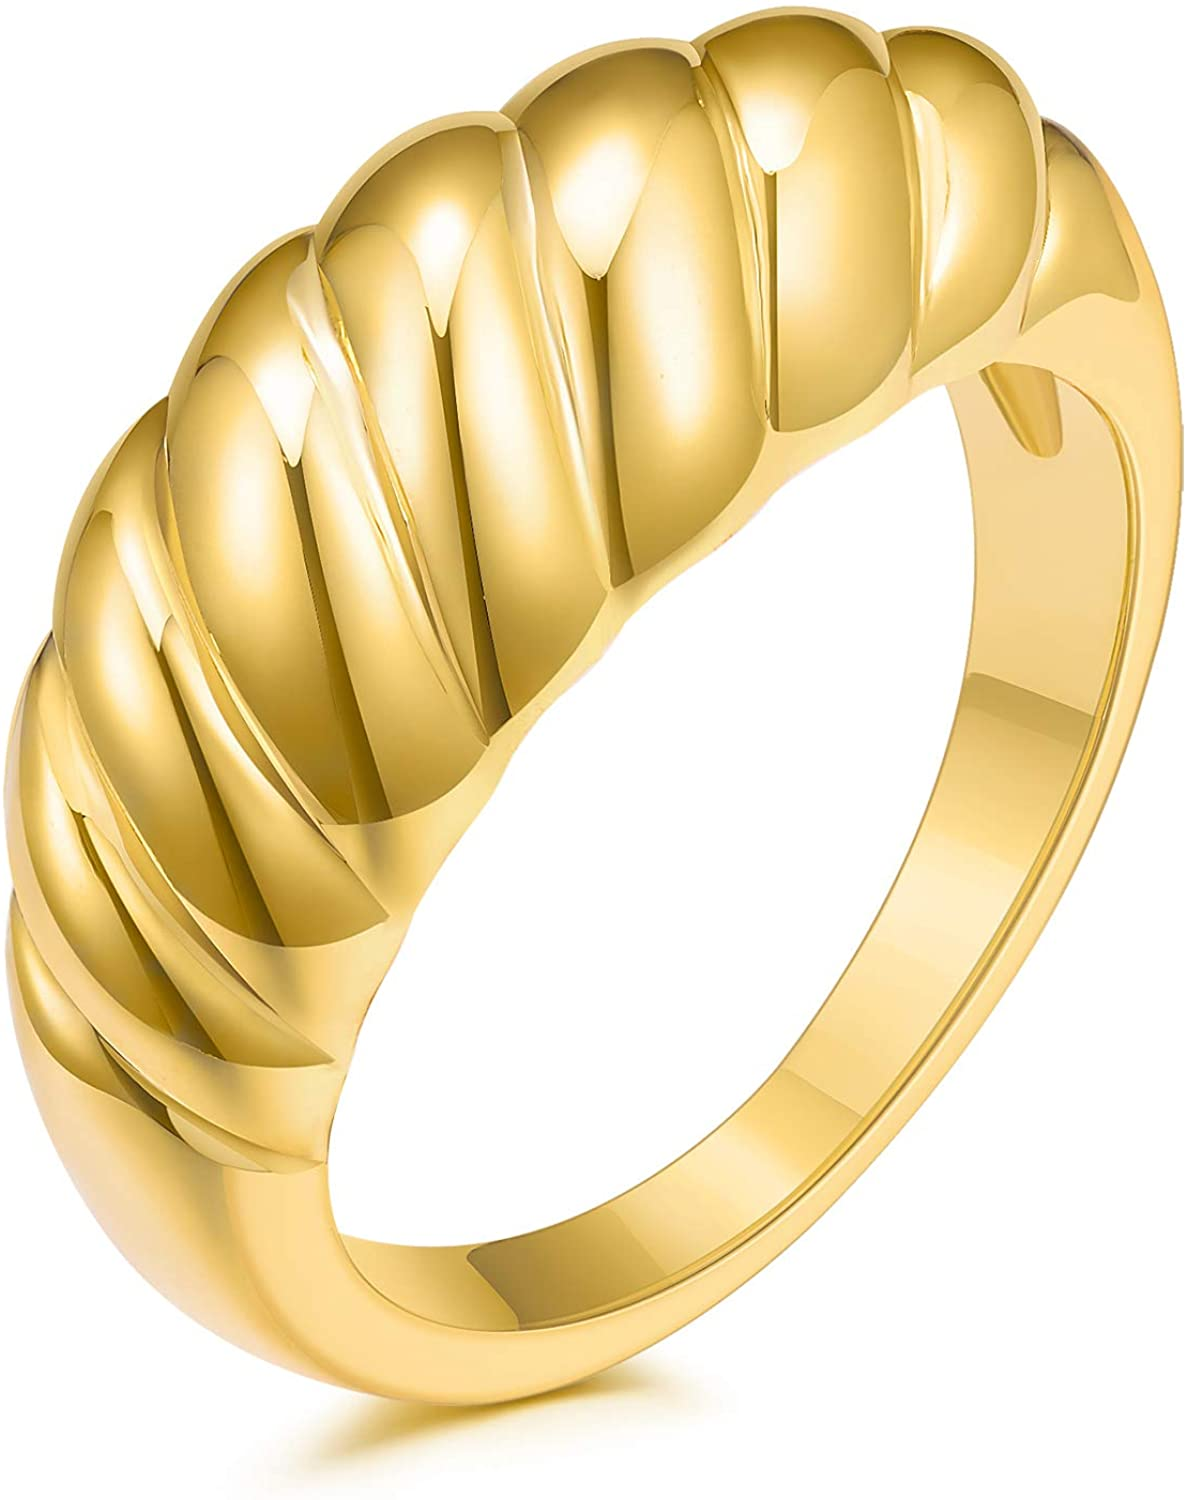 JINEAR 18k Gold Plated Croissant Braided Twisted Signet Chunky Dome Ring